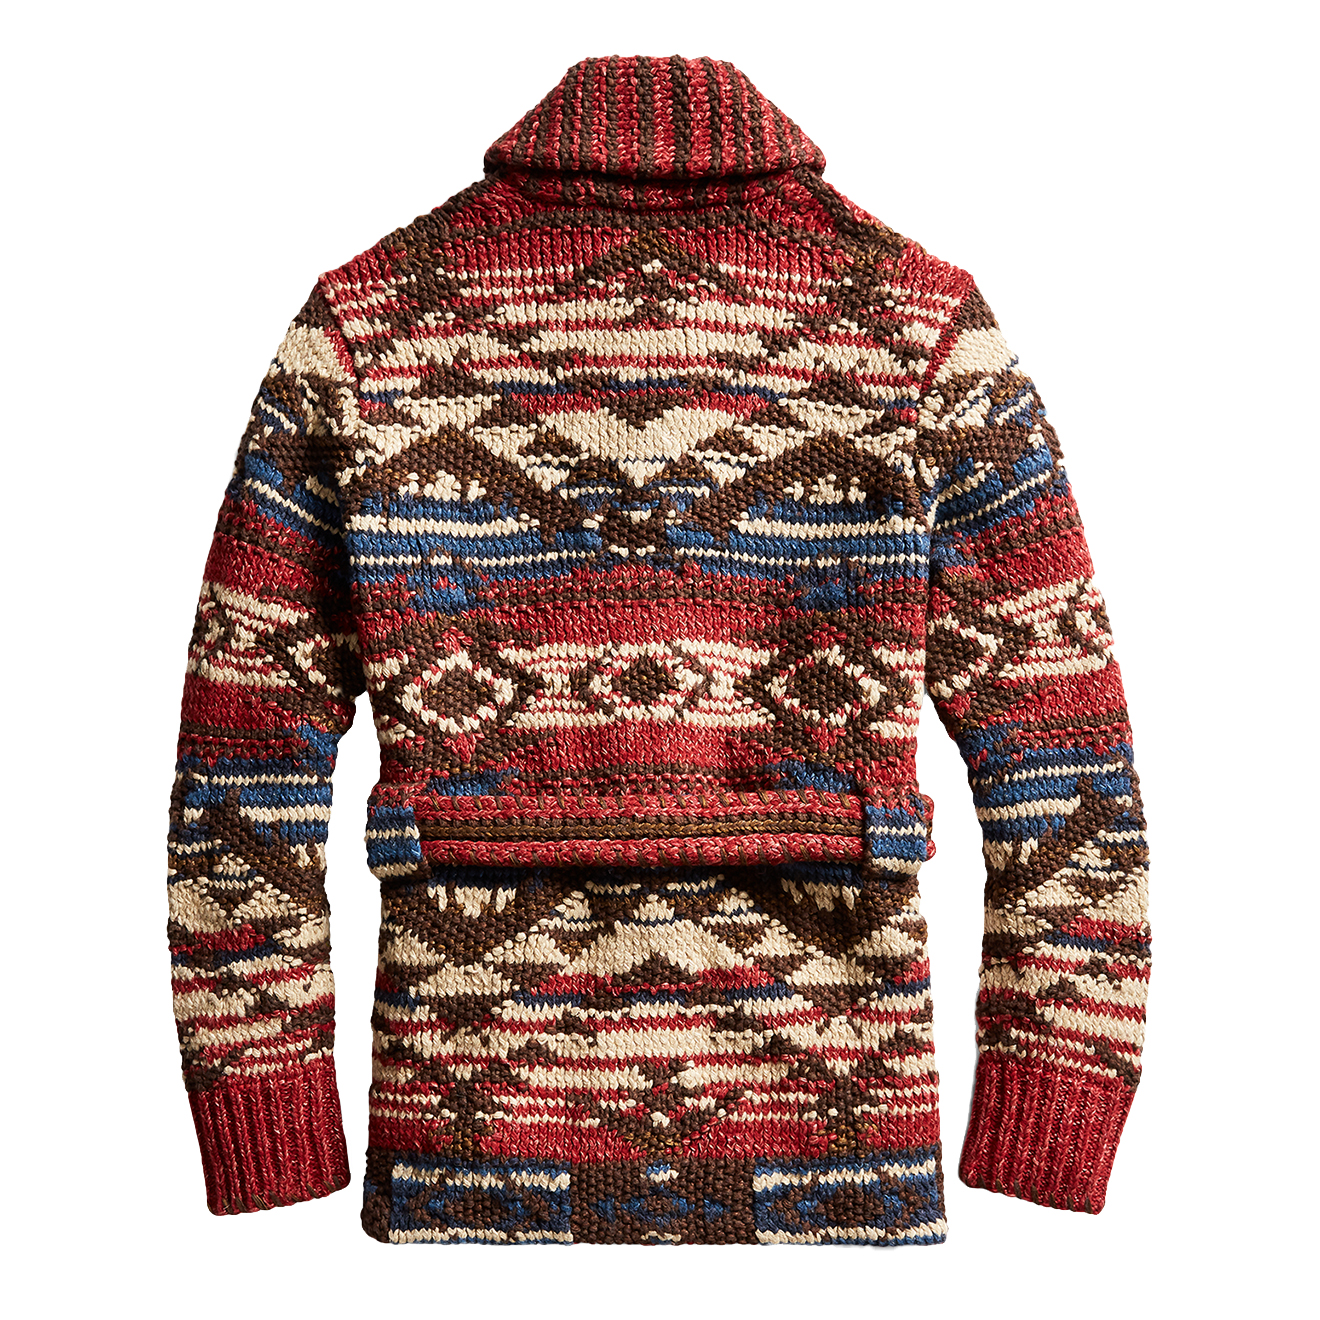 Rrl By Ralph Lauren Hand Knitted Ranch Cardigan Red Navy